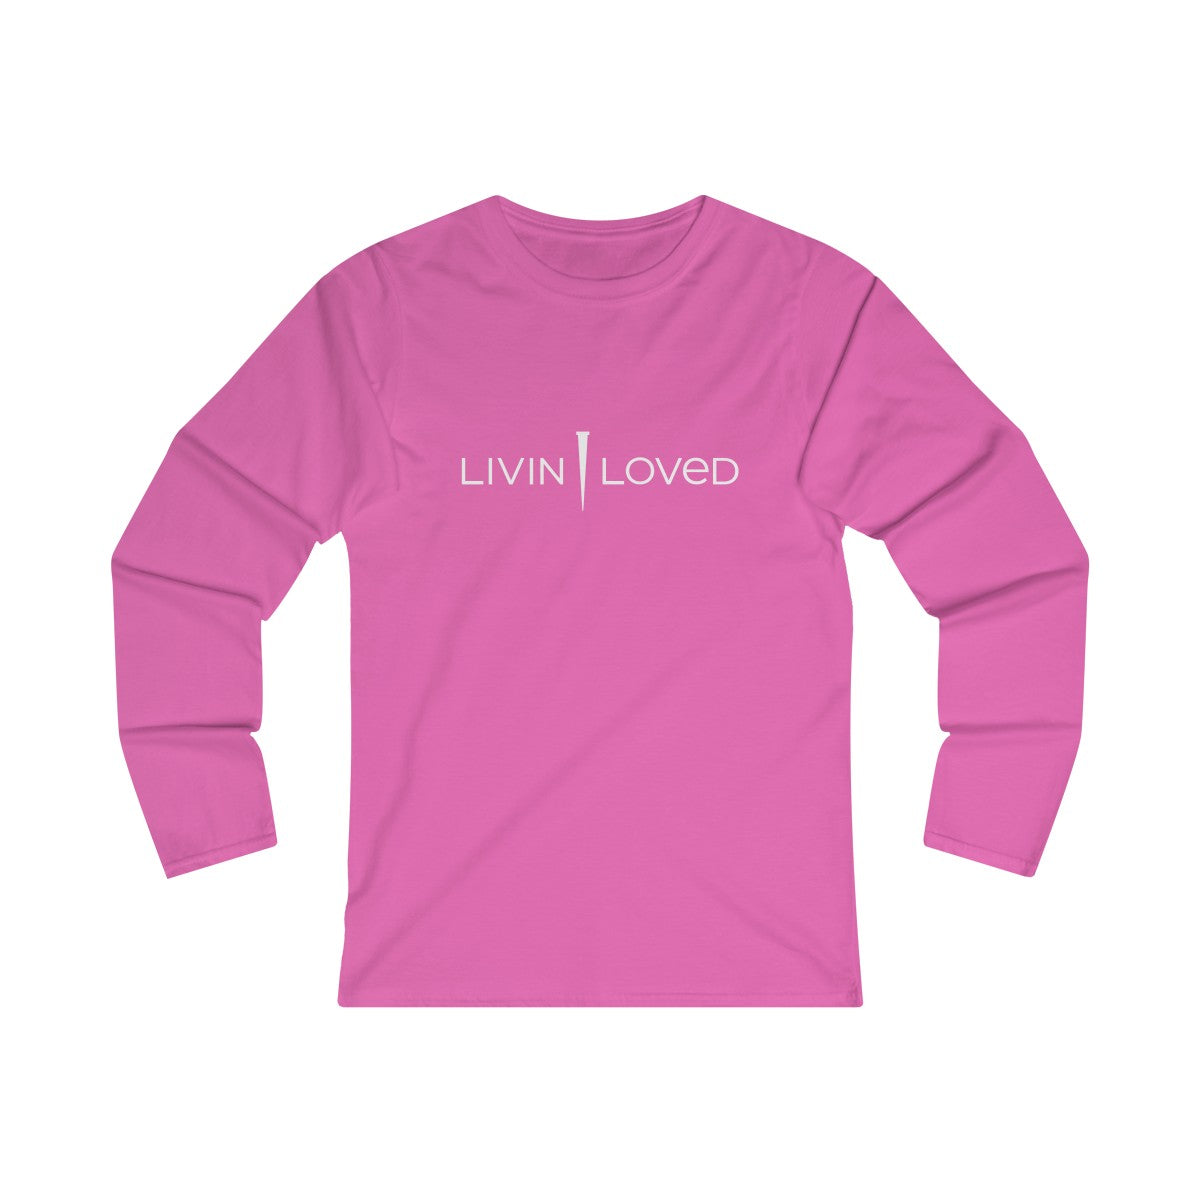 Livin Loved Logo Women's Fitted Long Sleeve Tee